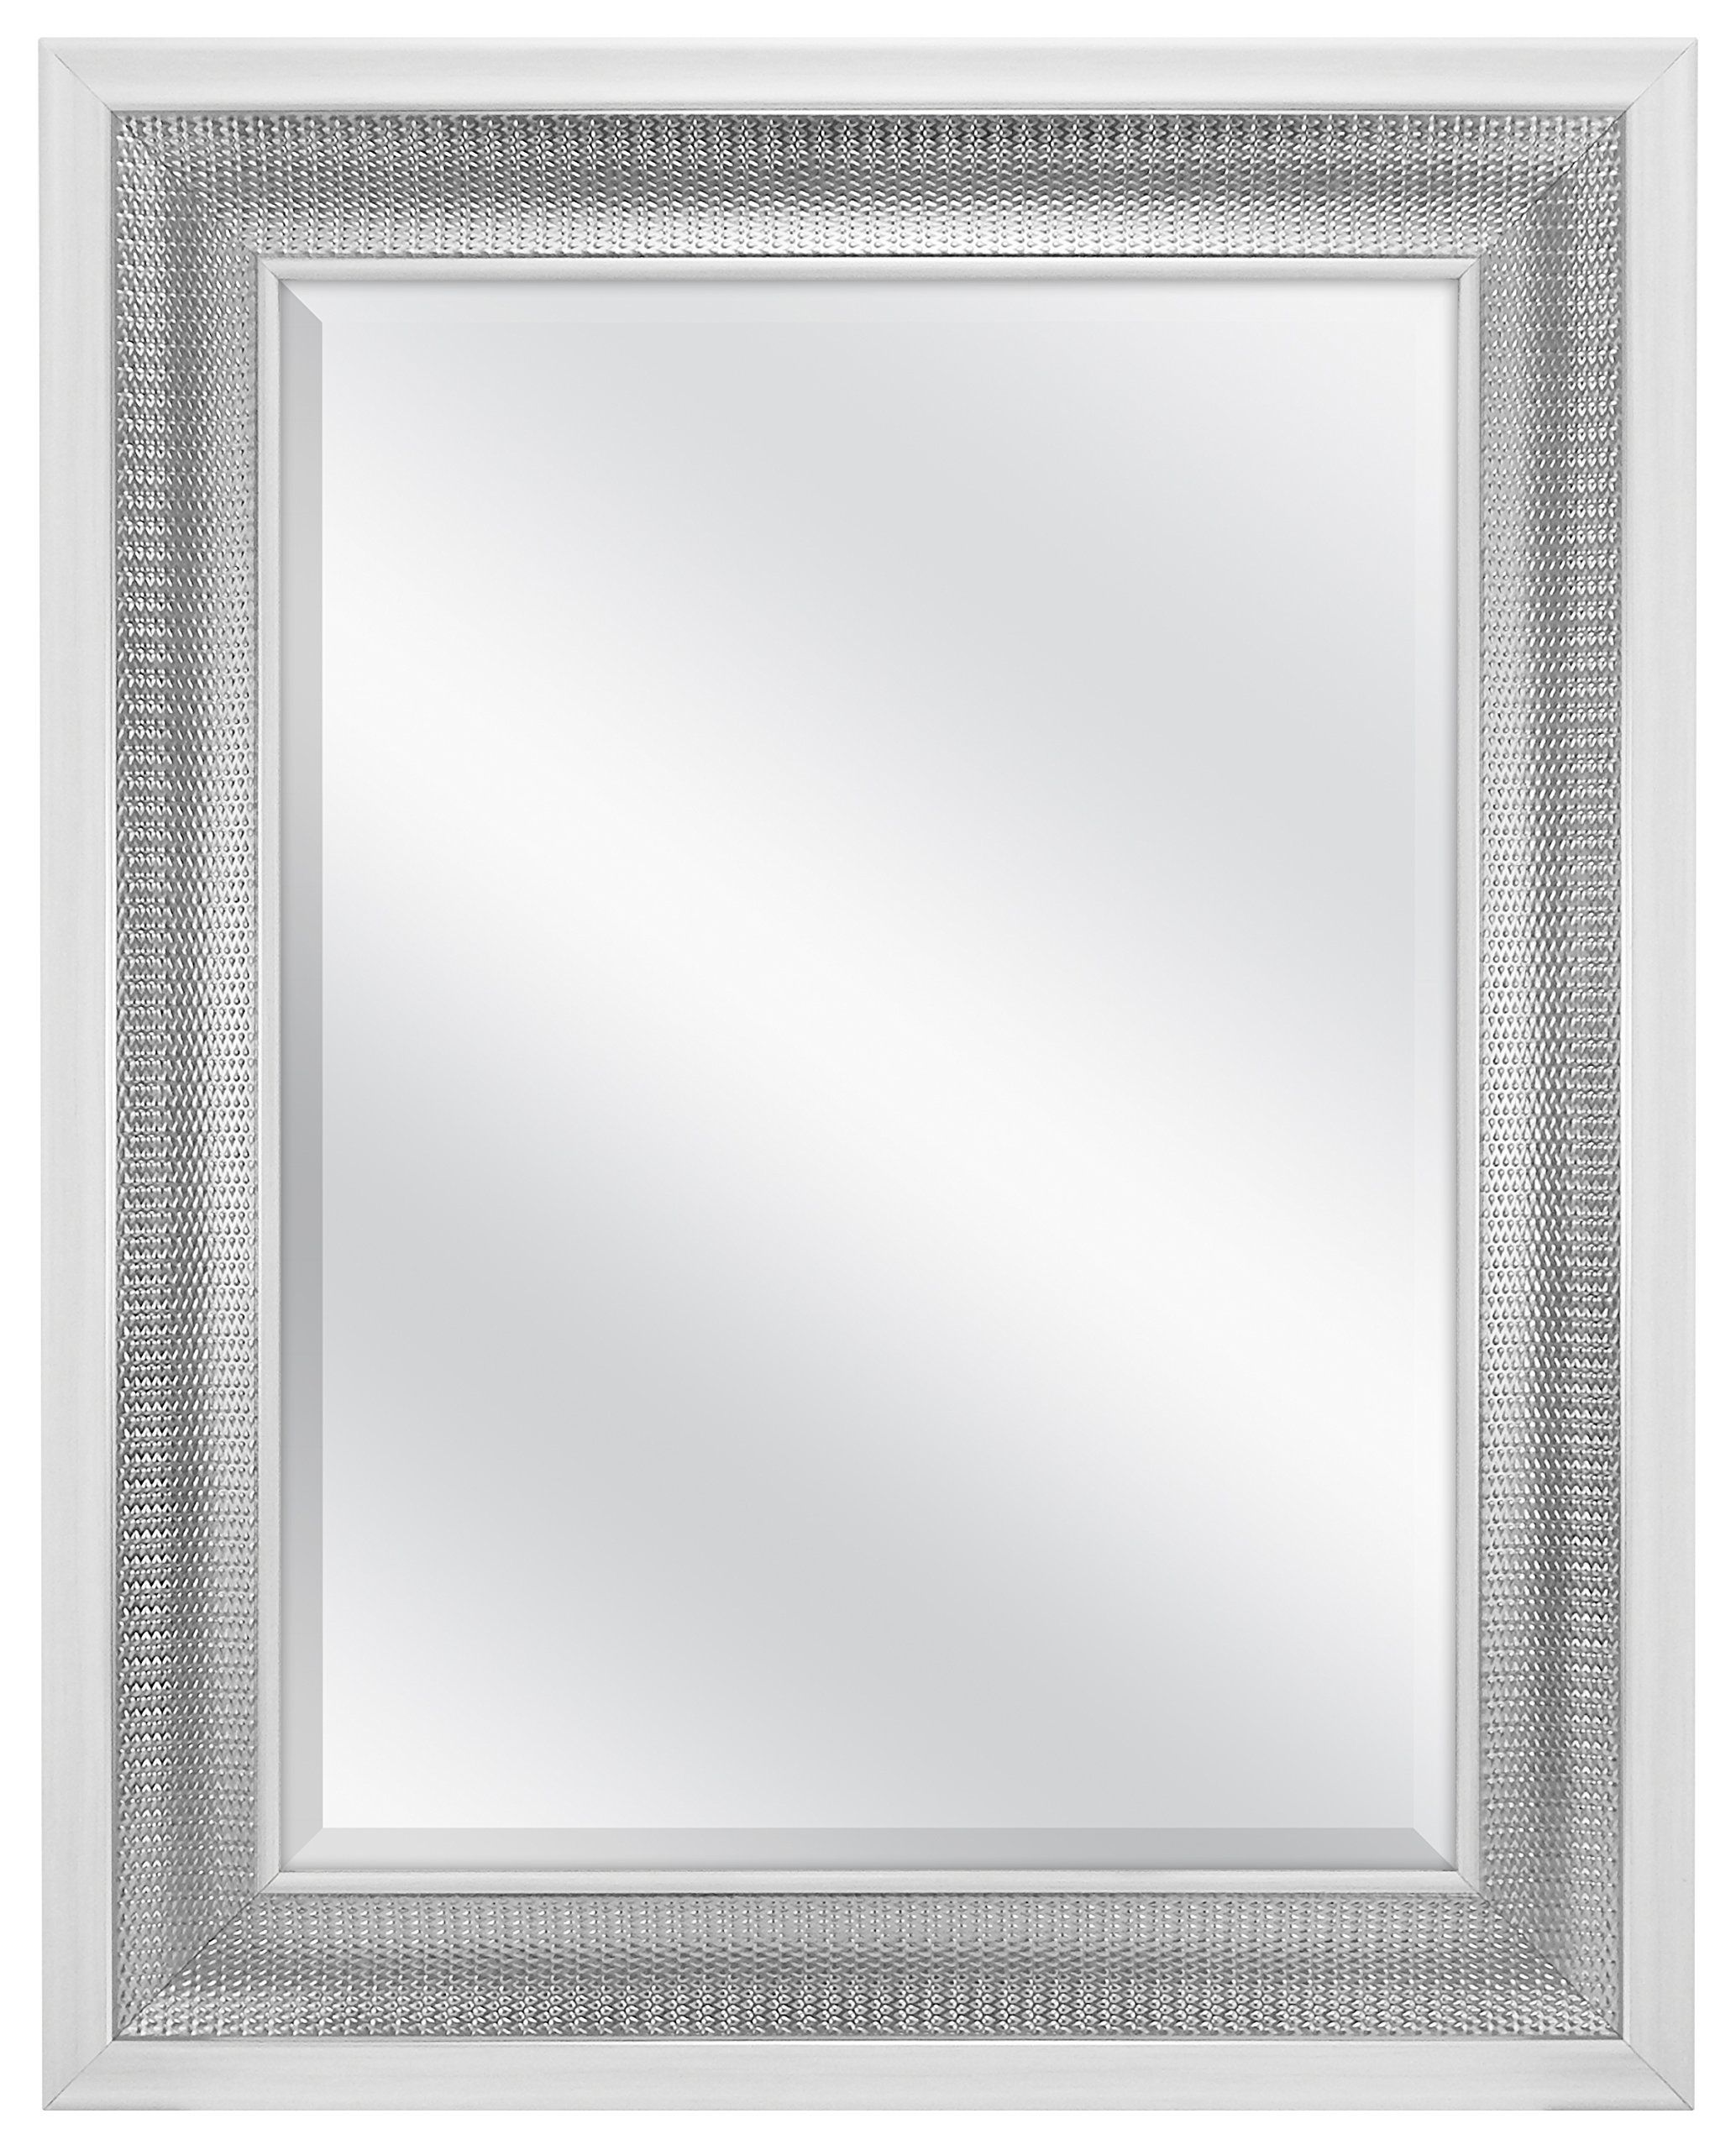 Mcs 18x24 Inch Beveled Wall Mirror White Woven Silver 83041 Mirror Reflection Size Is 18x24 Inches Mirror Includes Mirror Wall Mirror Framed Mirror Wall [ 2560 x 2067 Pixel ]